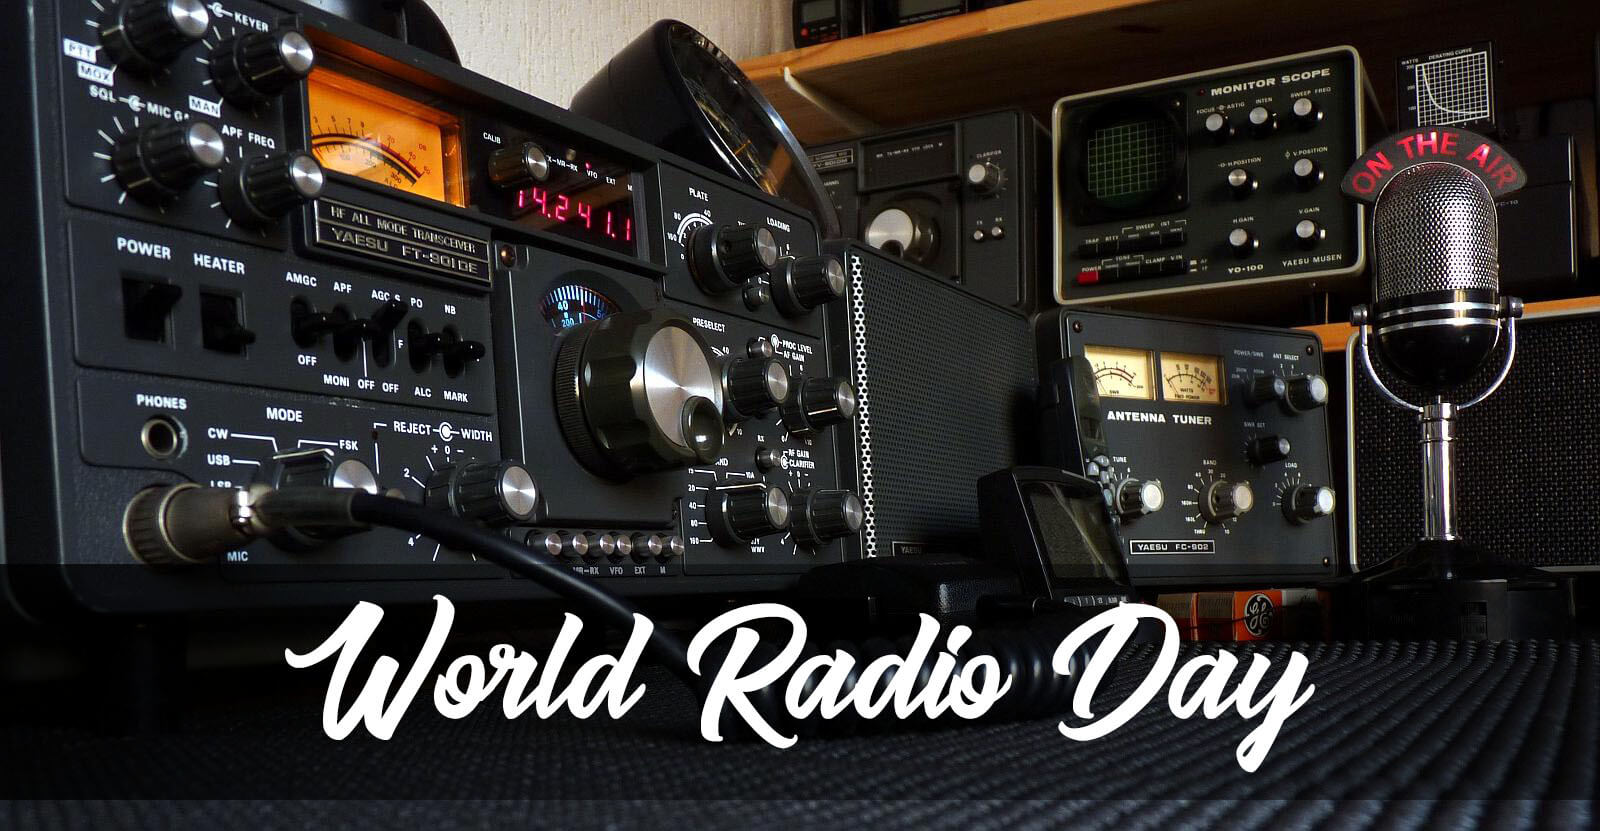 world radio day new latest pc desktop background wide hd wallpaper